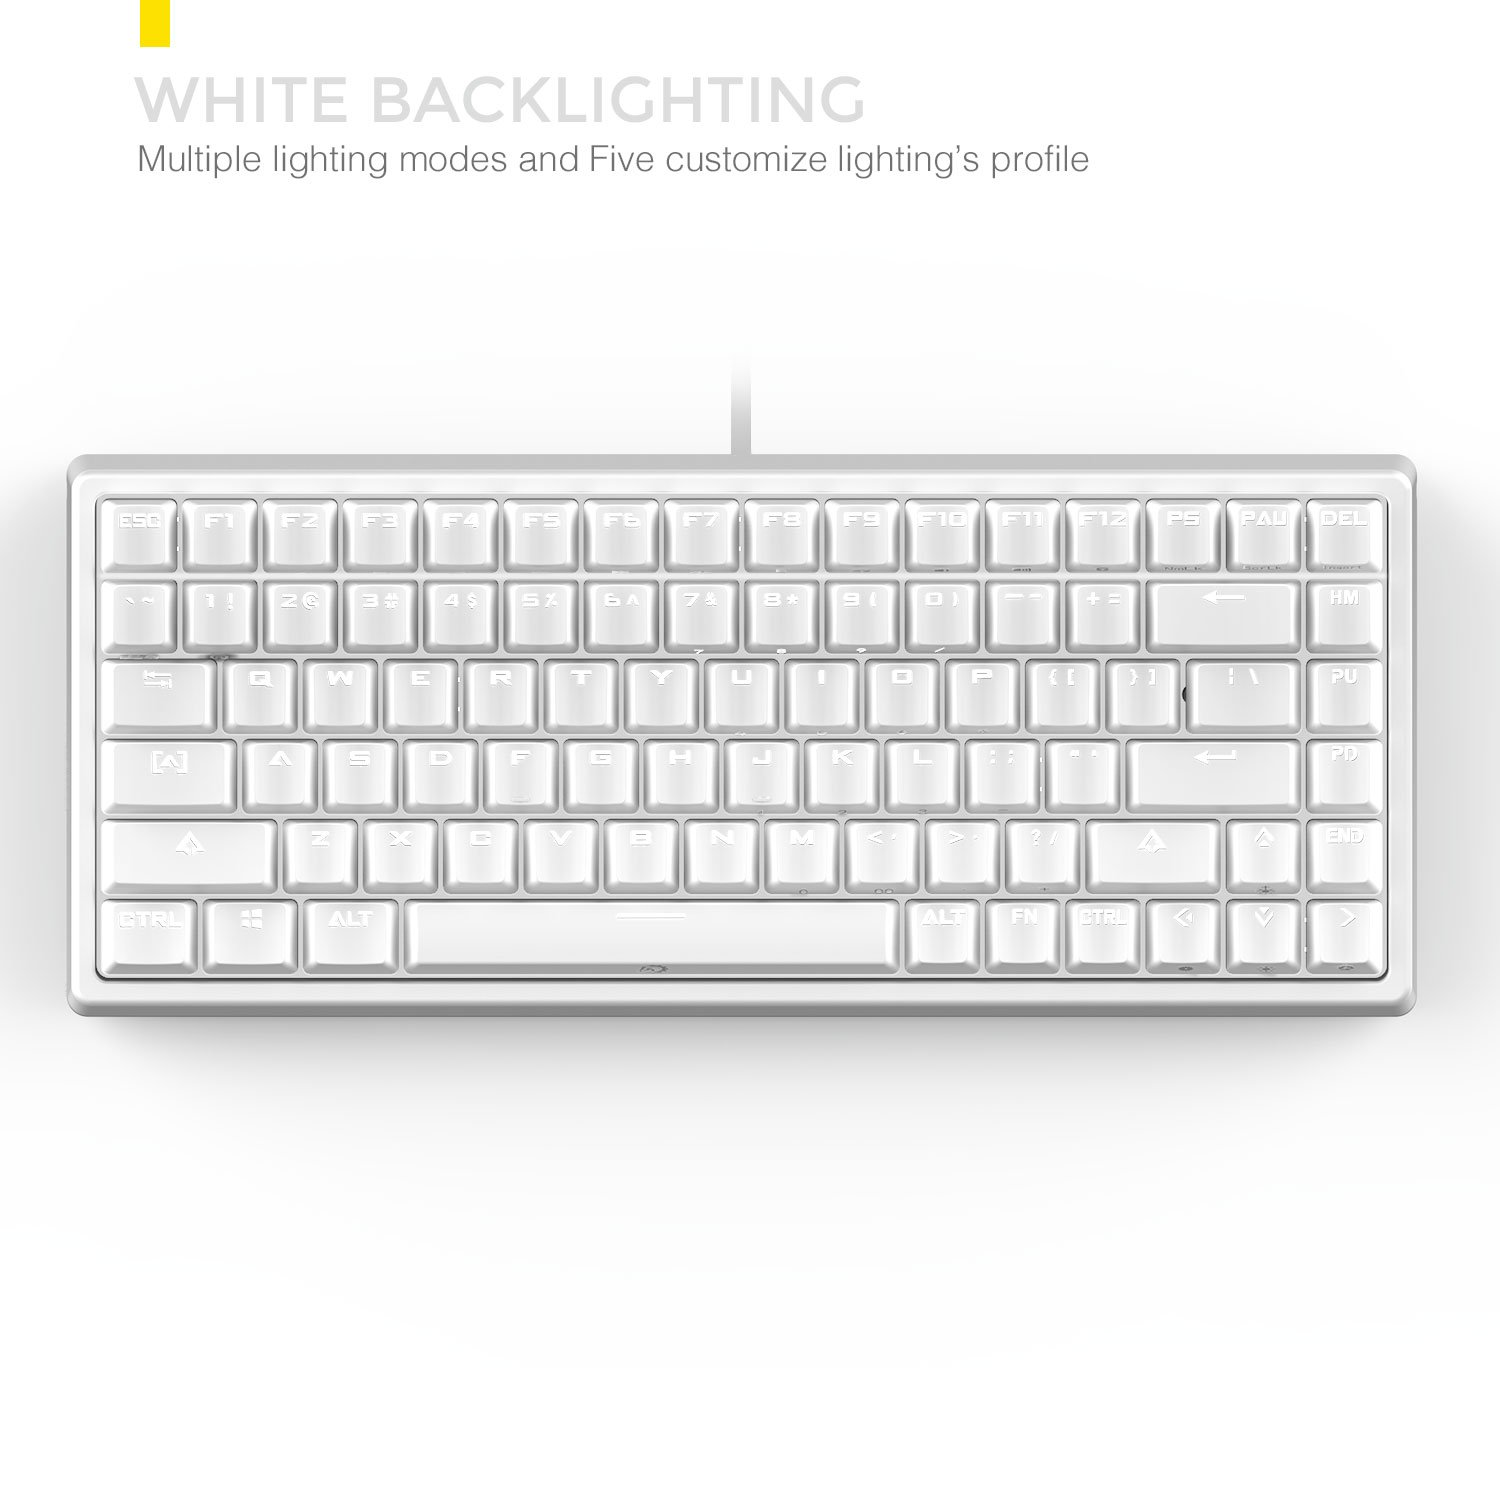 Drevo Gramr 84 Key Backlit Usb Wired Tenkeyless Pc Printed Circuit Board Customized Pcb Boards Buy Tablet Mechanical Gaming Keyboard Brown Switch White Computers Accessories